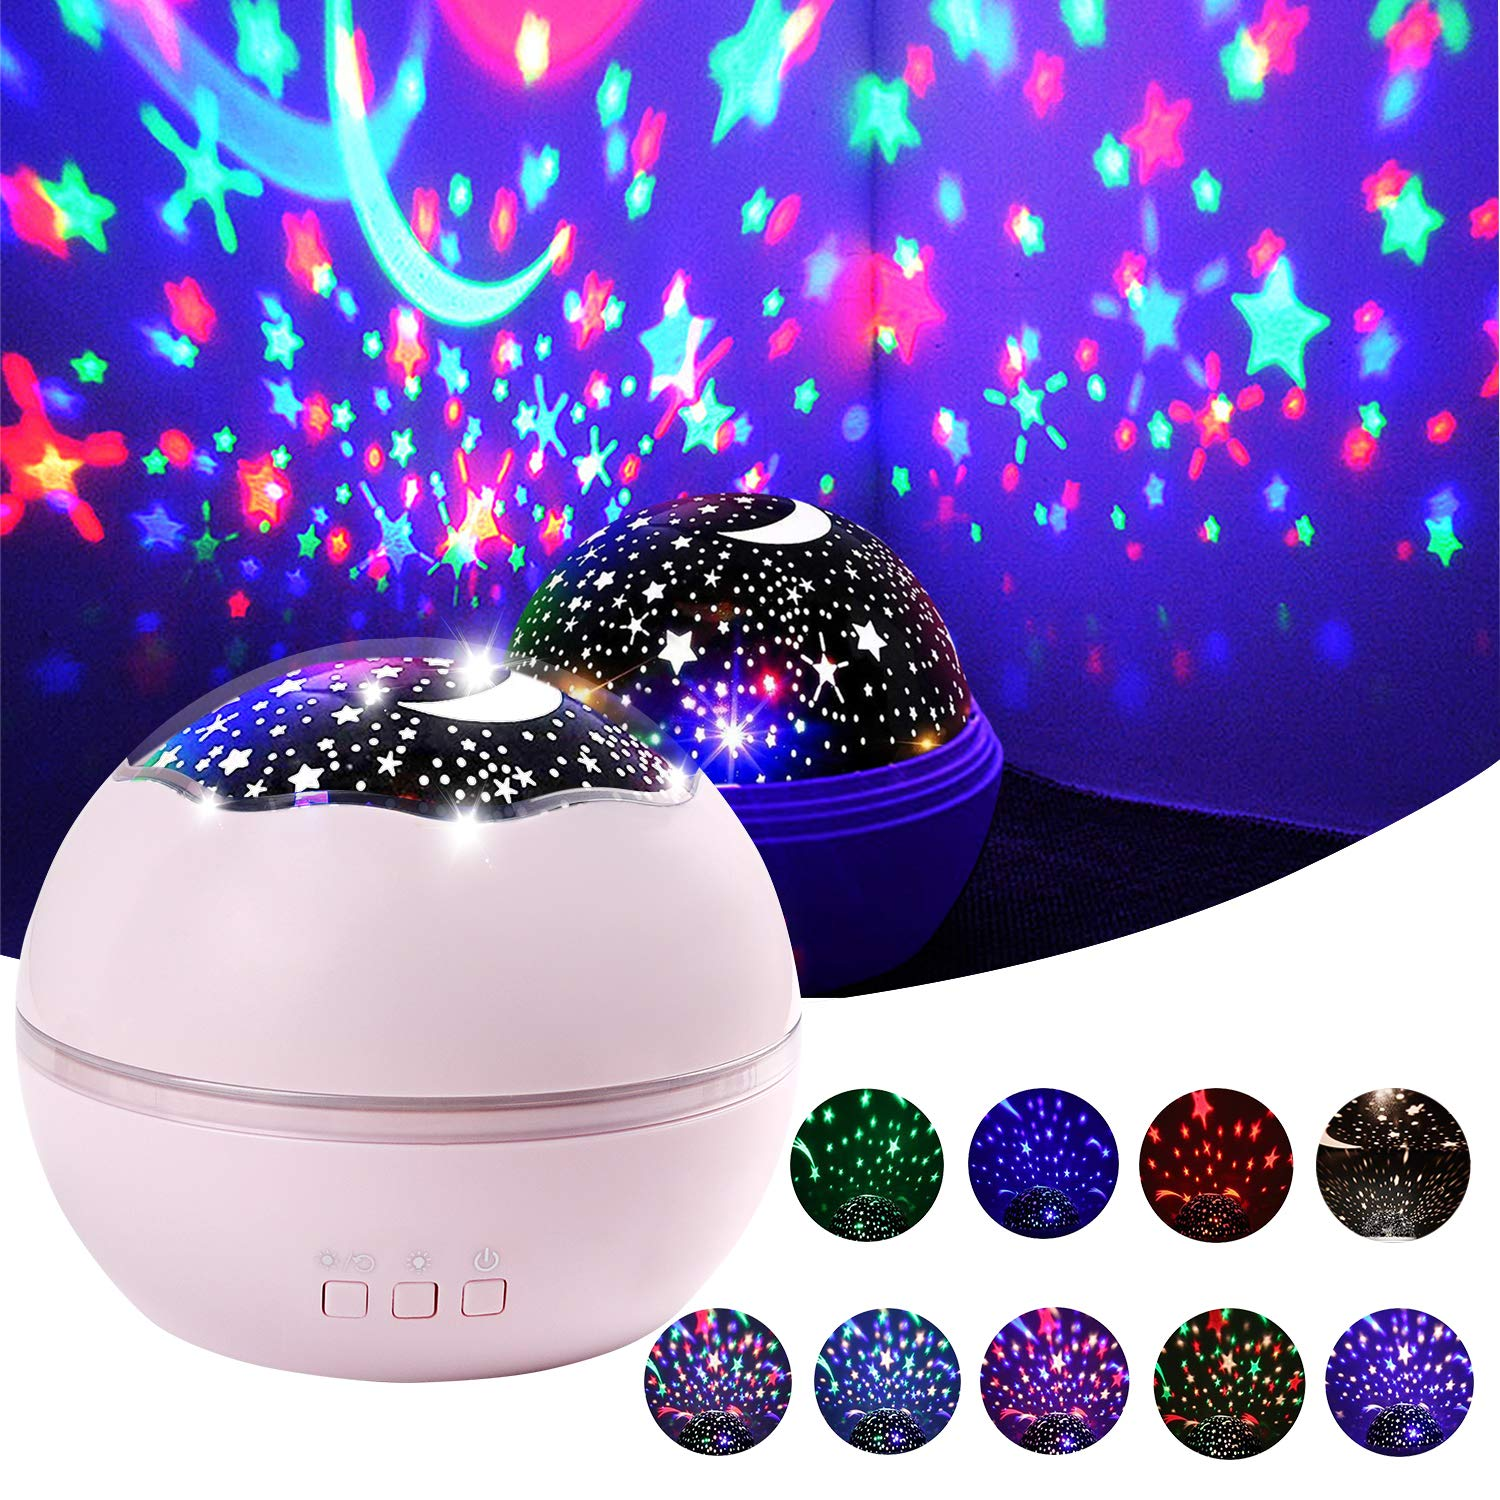 Star Projector Light, Night Lamp Romantic Rotating Sea Animals Star Moon Cover Projector Night Lighting for Children Adults Bedroom, Birthday,Baby Nursery Light (Black) Samyoung